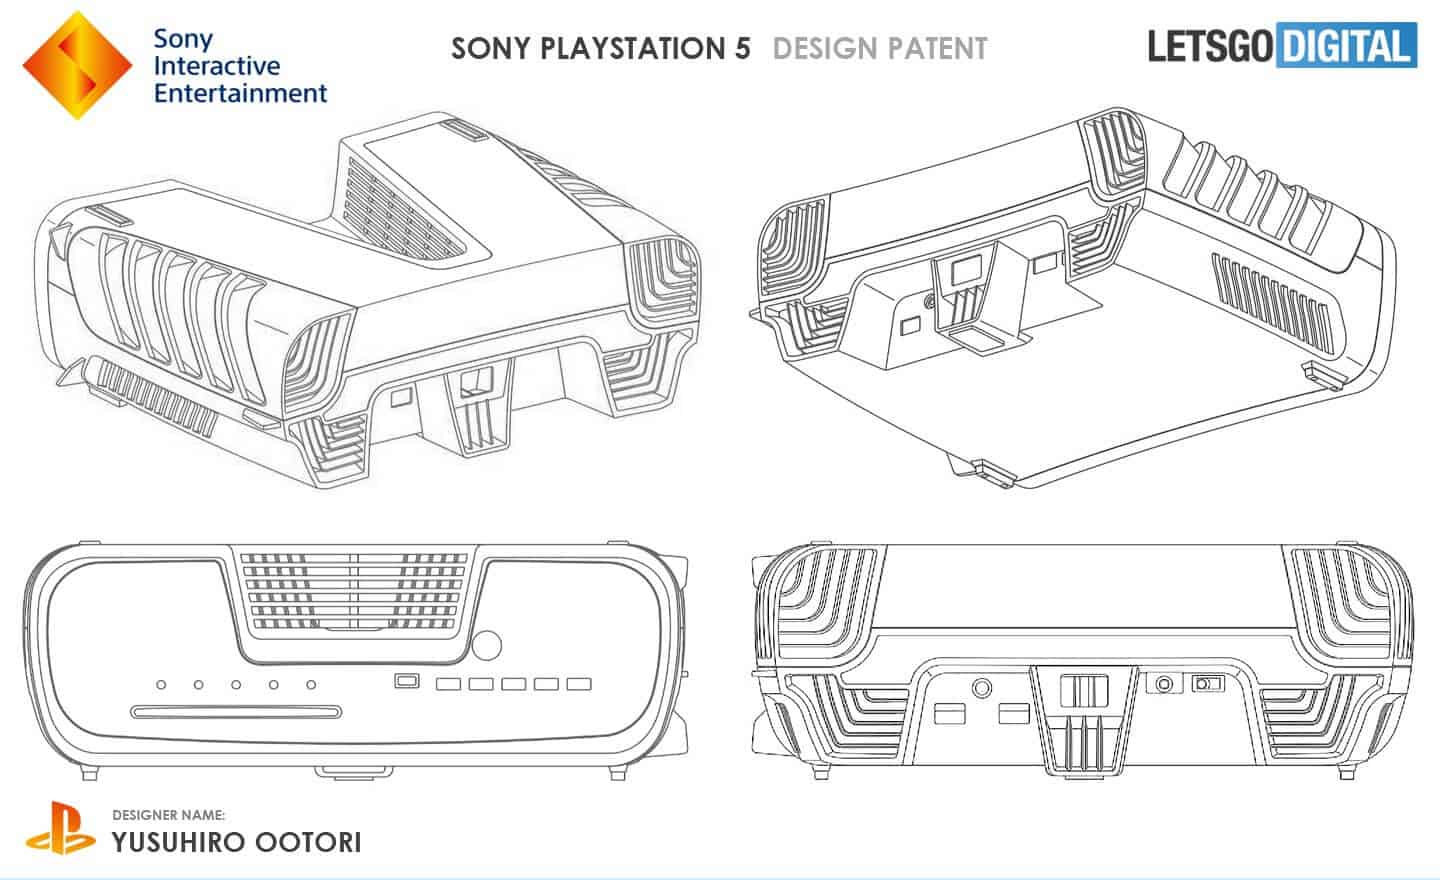 Playstation 5 - Voici les plans du design de la PS5